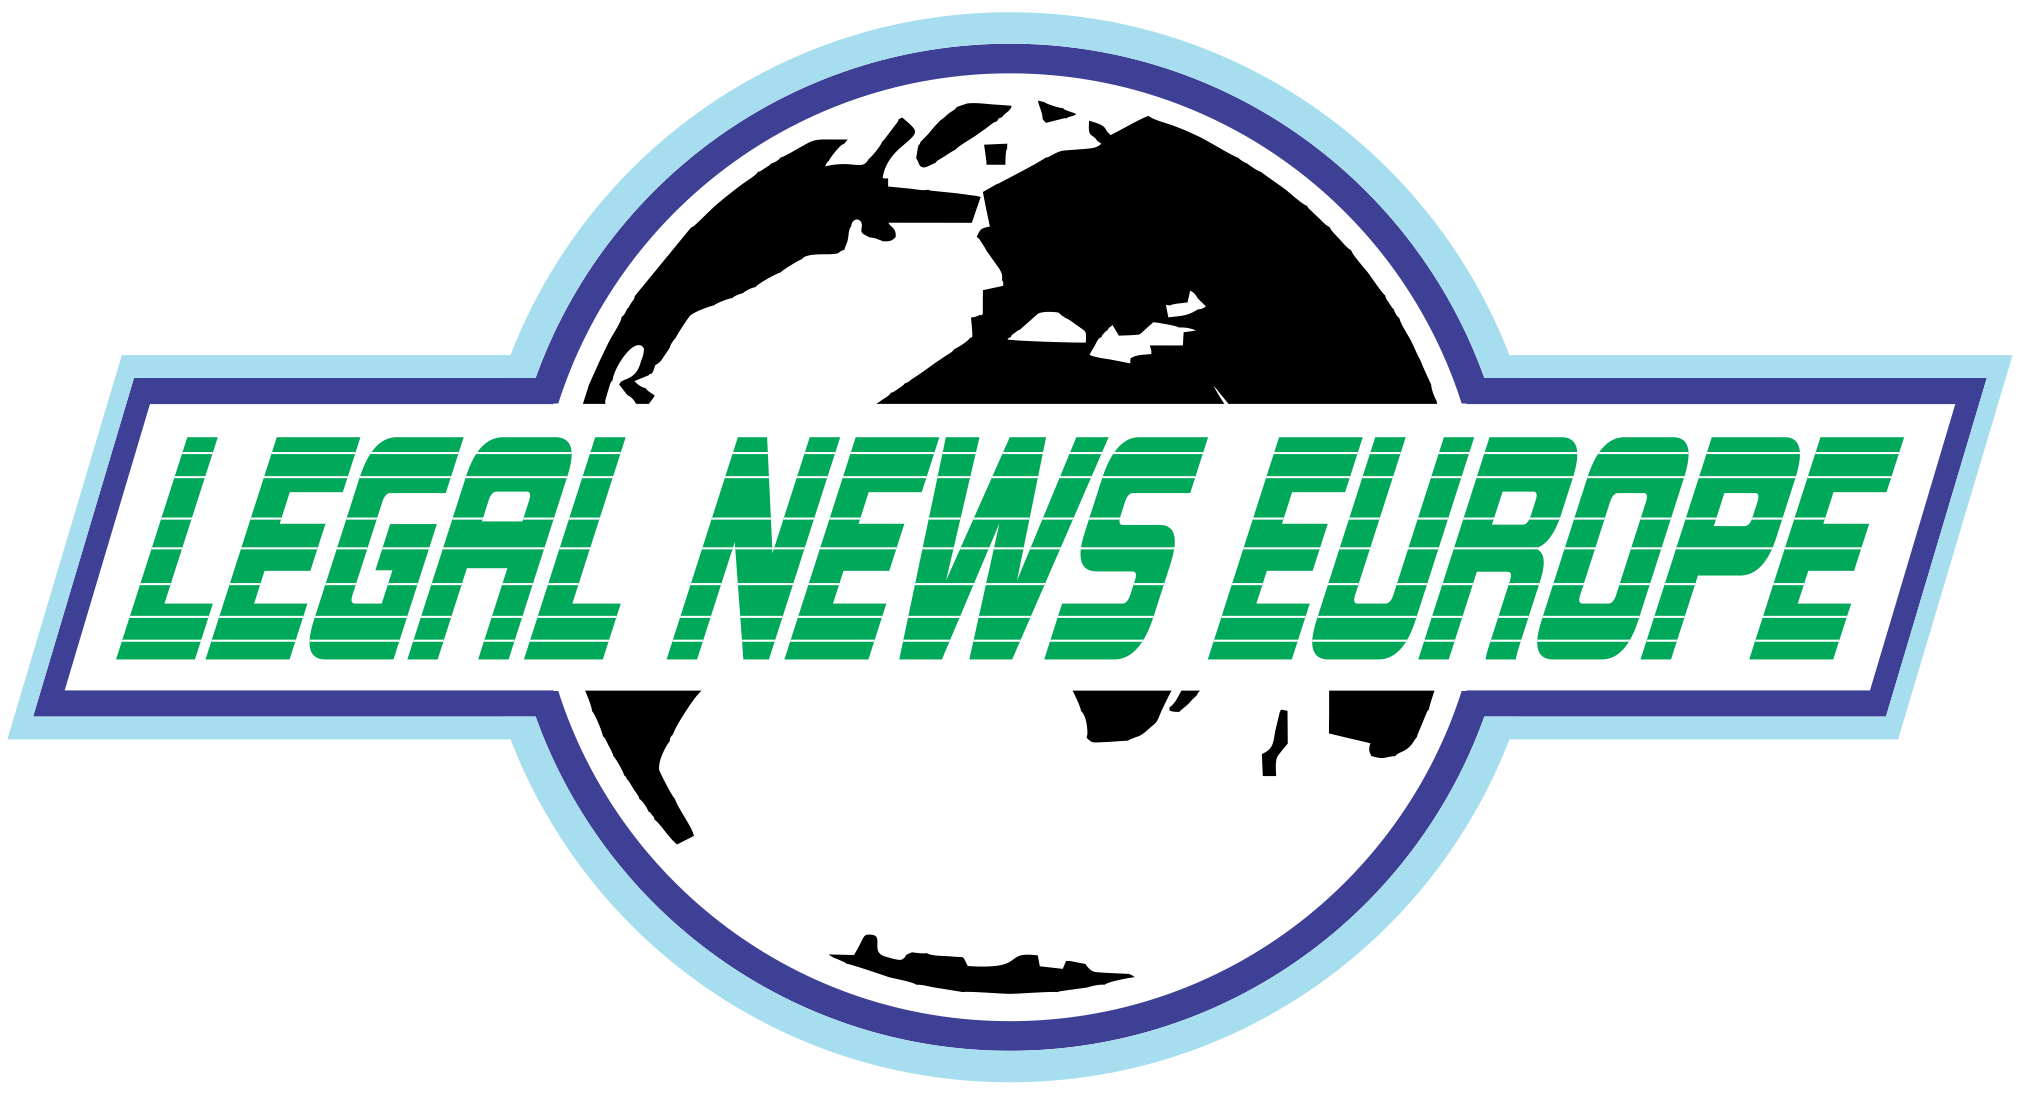 Legal News Europe